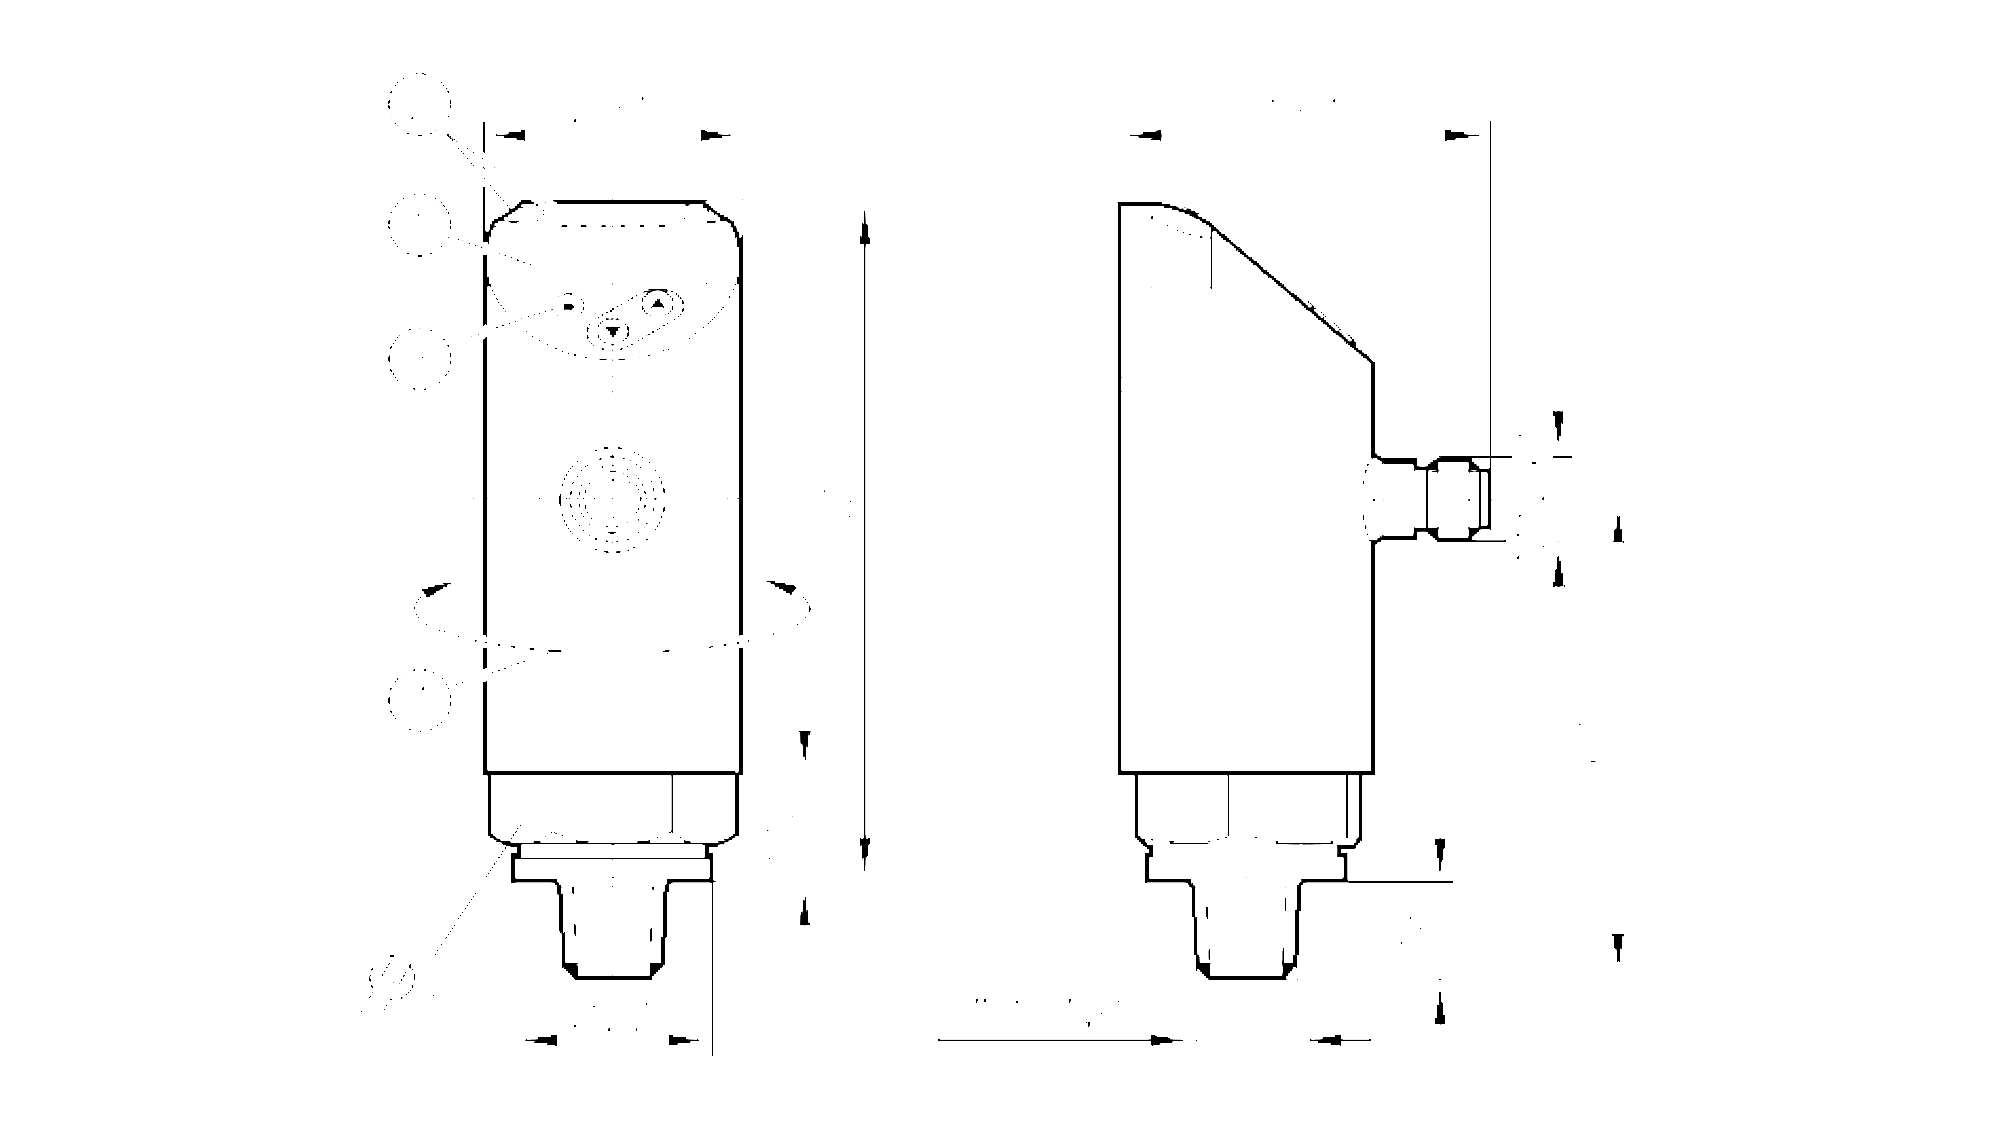 pn2670 - pressure sensor with display